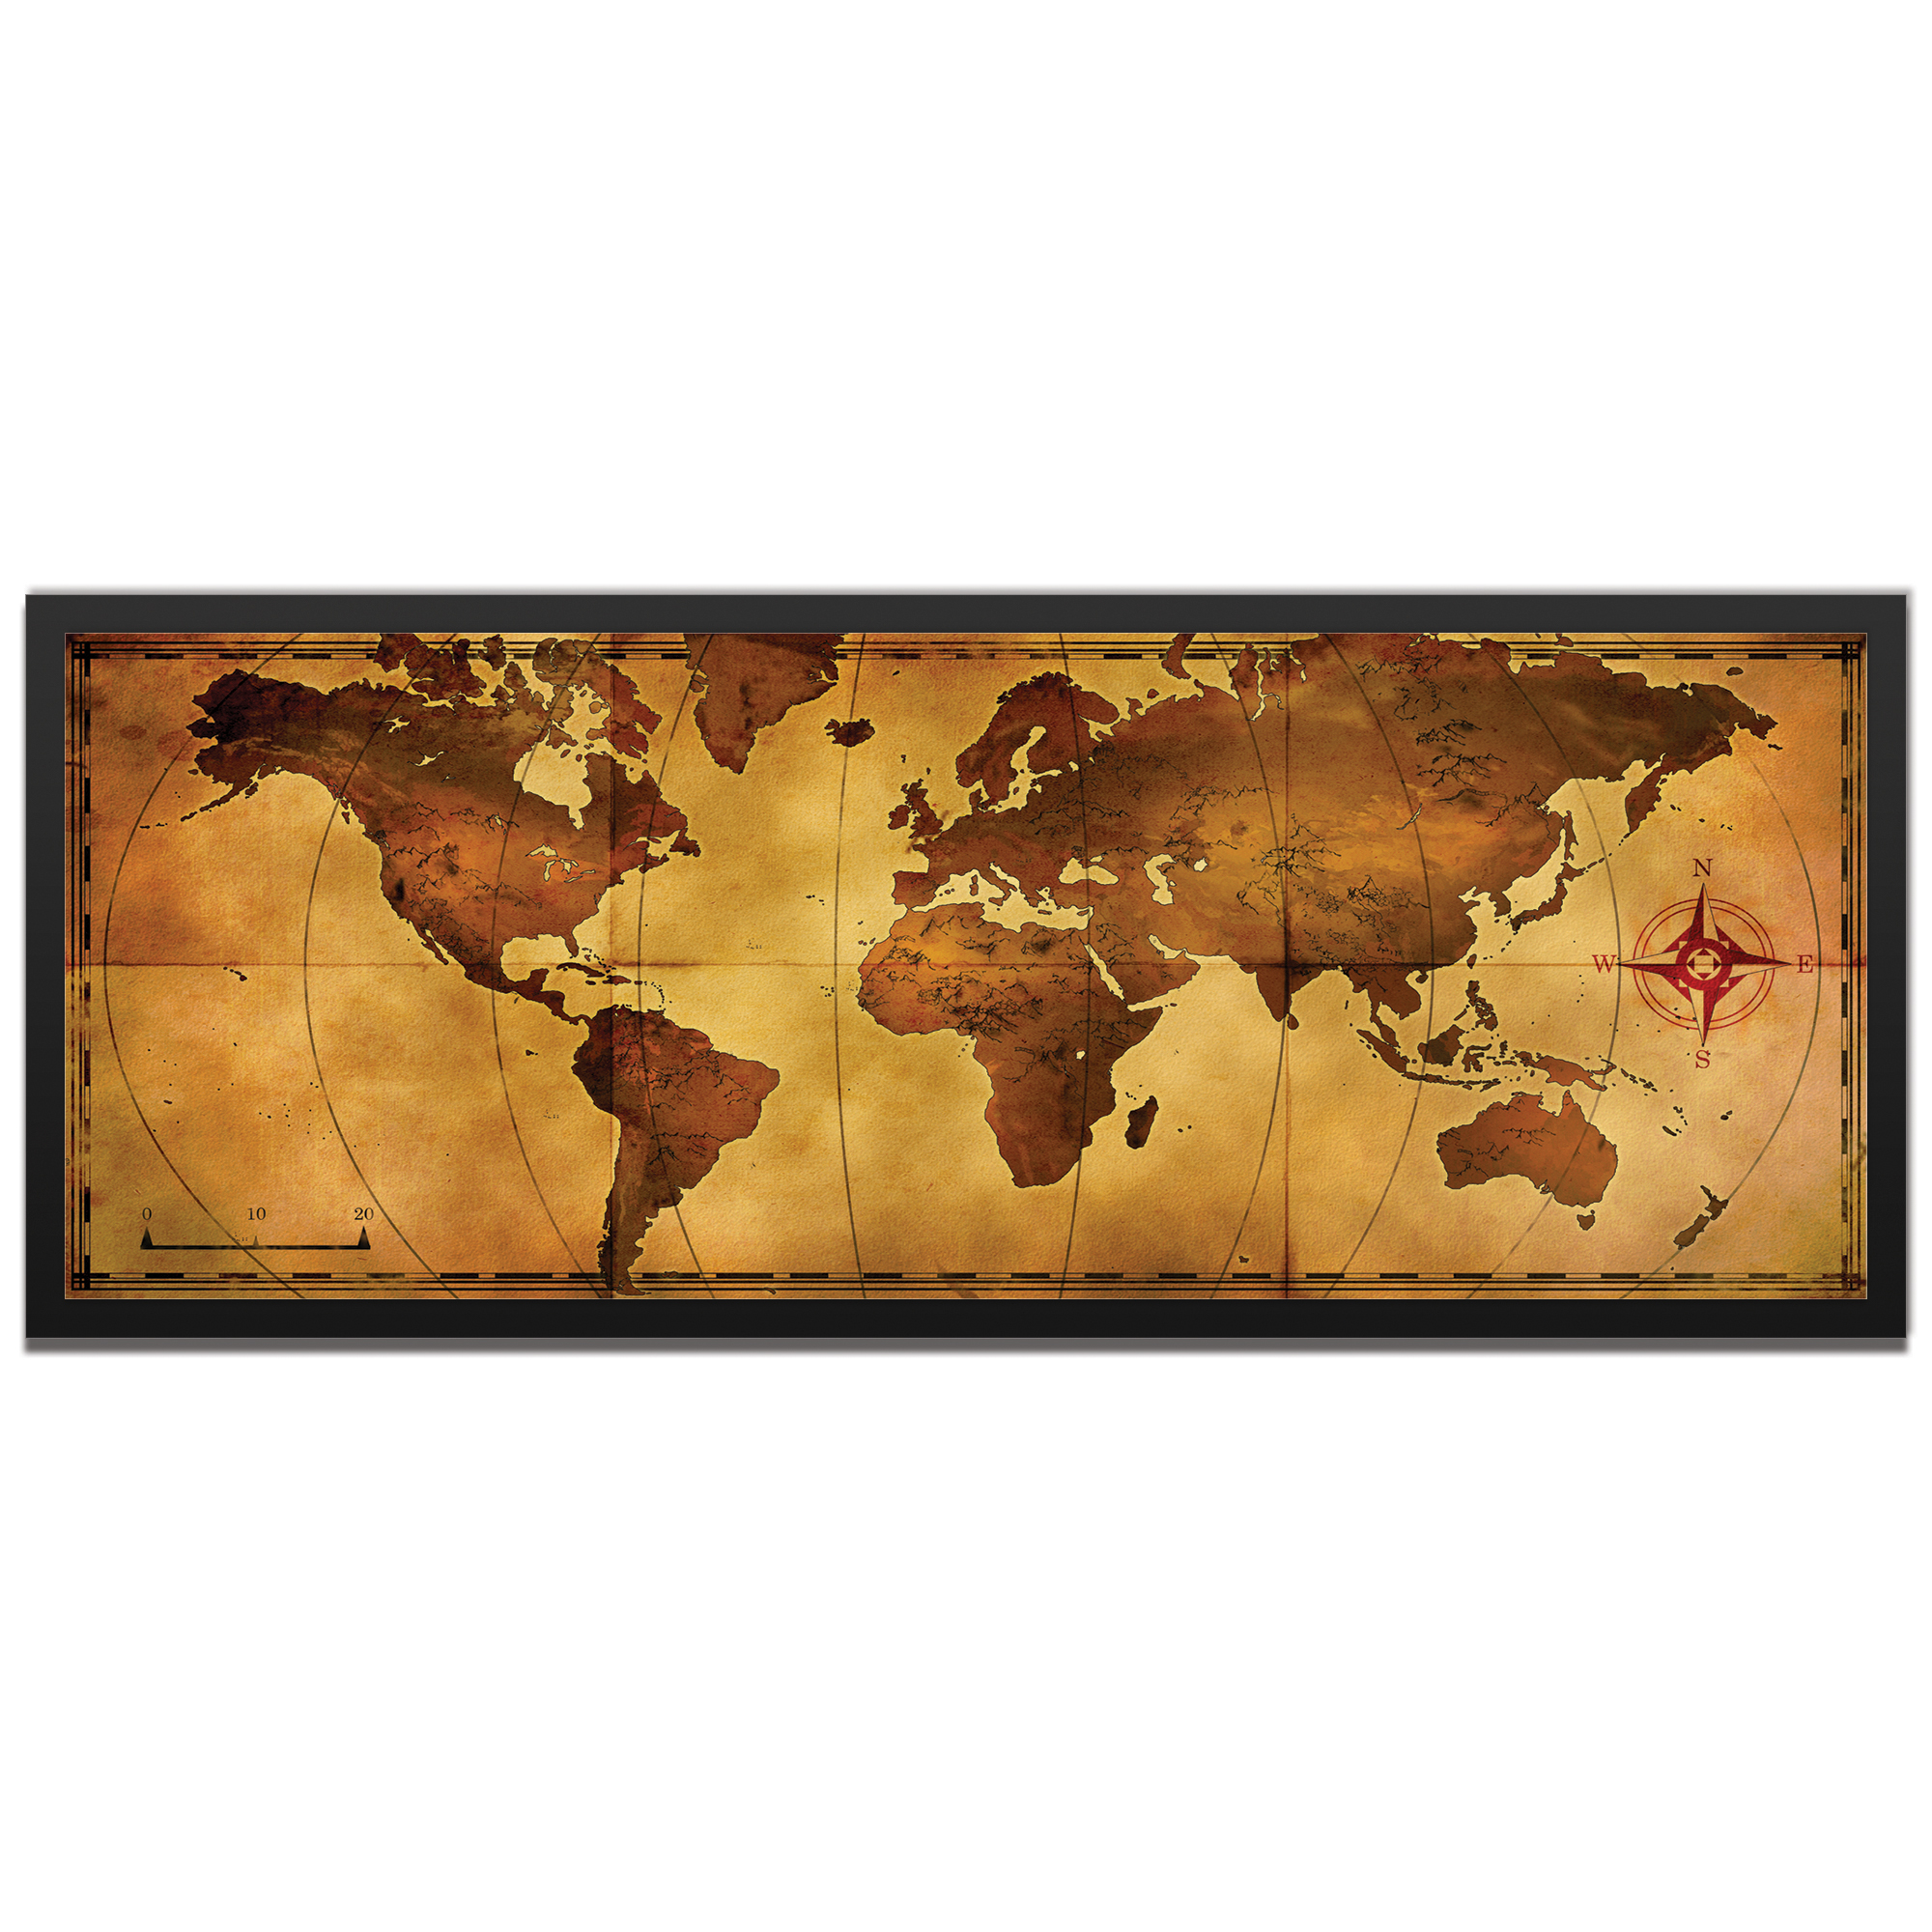 Alan Rodriguez 'Old World Map Framed' 48in x 19in Traditional World Map Art on Colored Metal